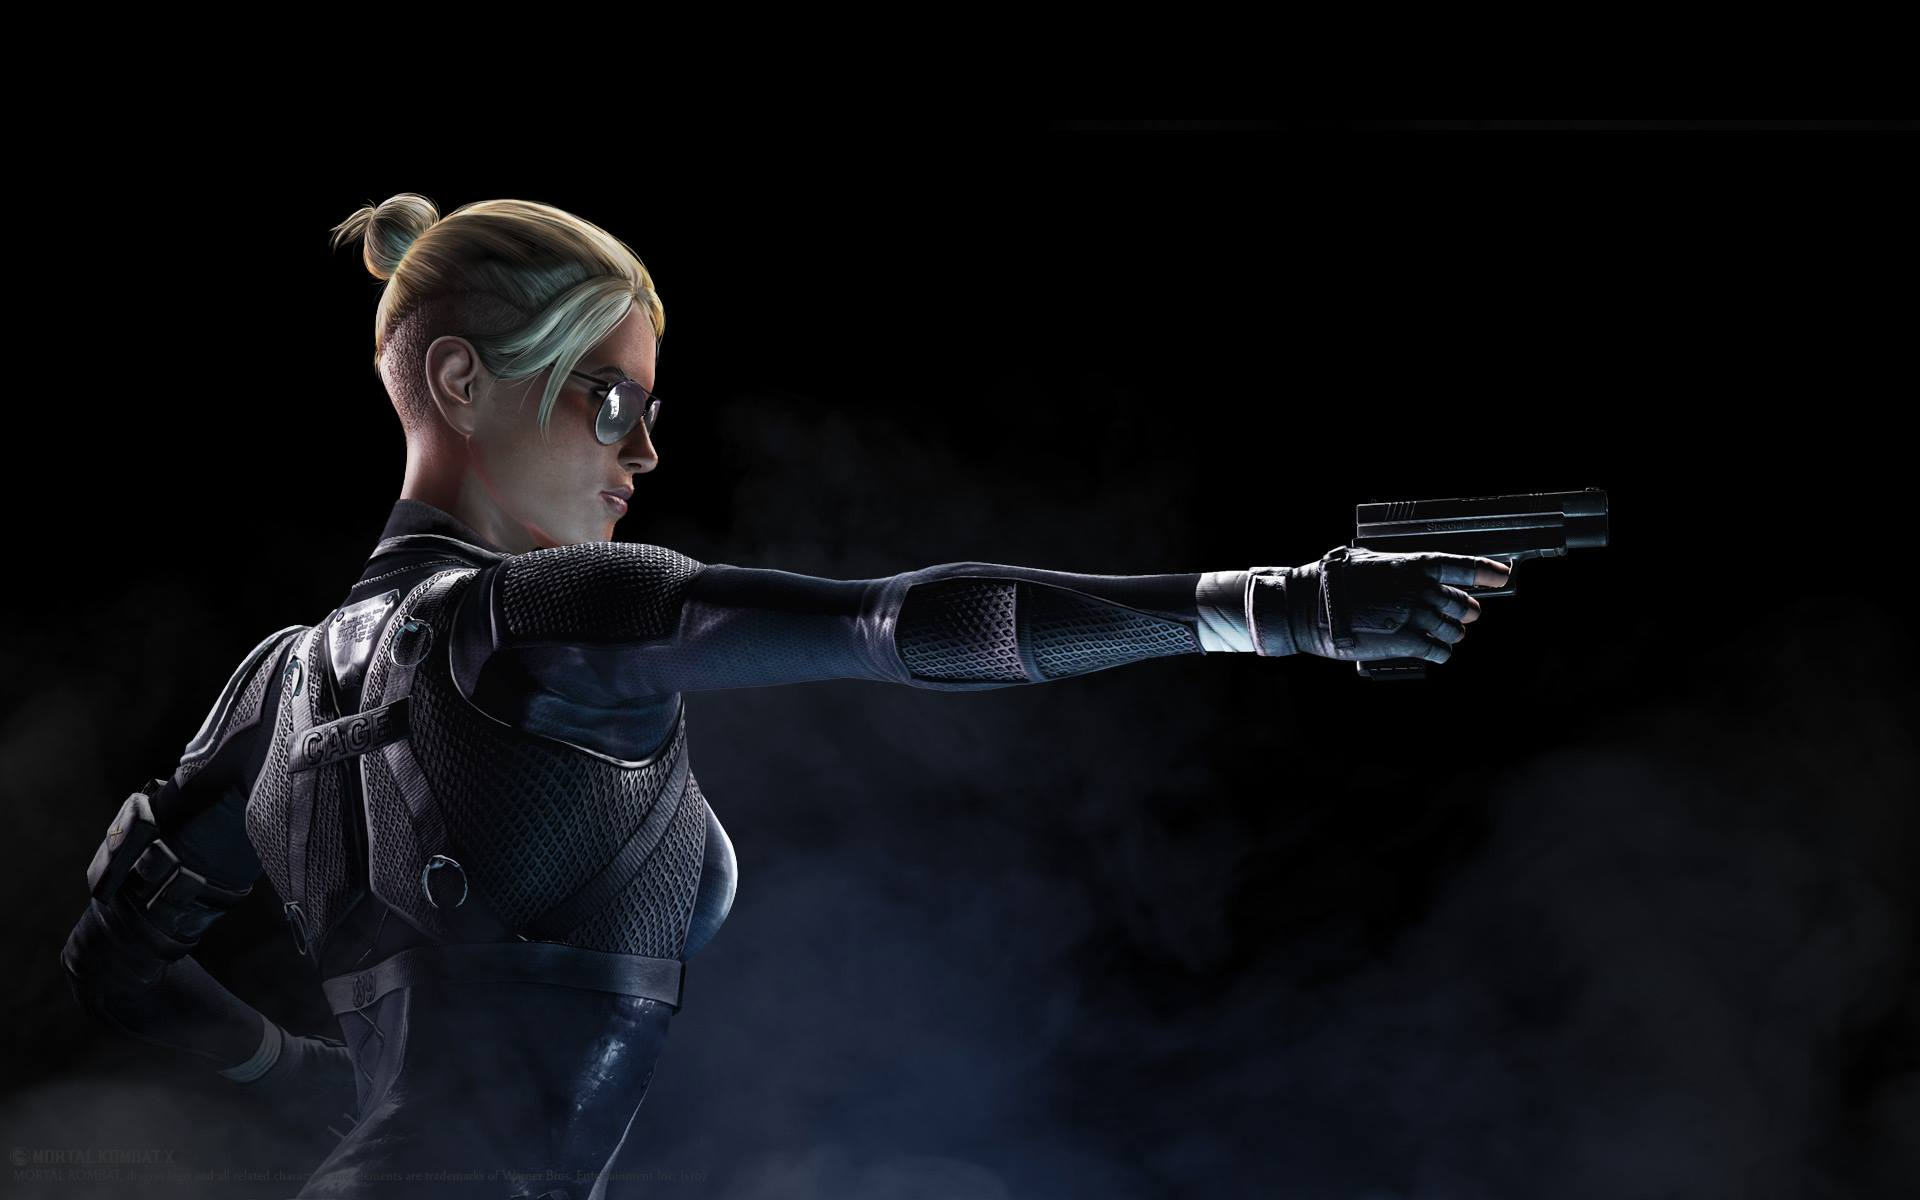 Mortal Kombat X deemed to have strong female characters